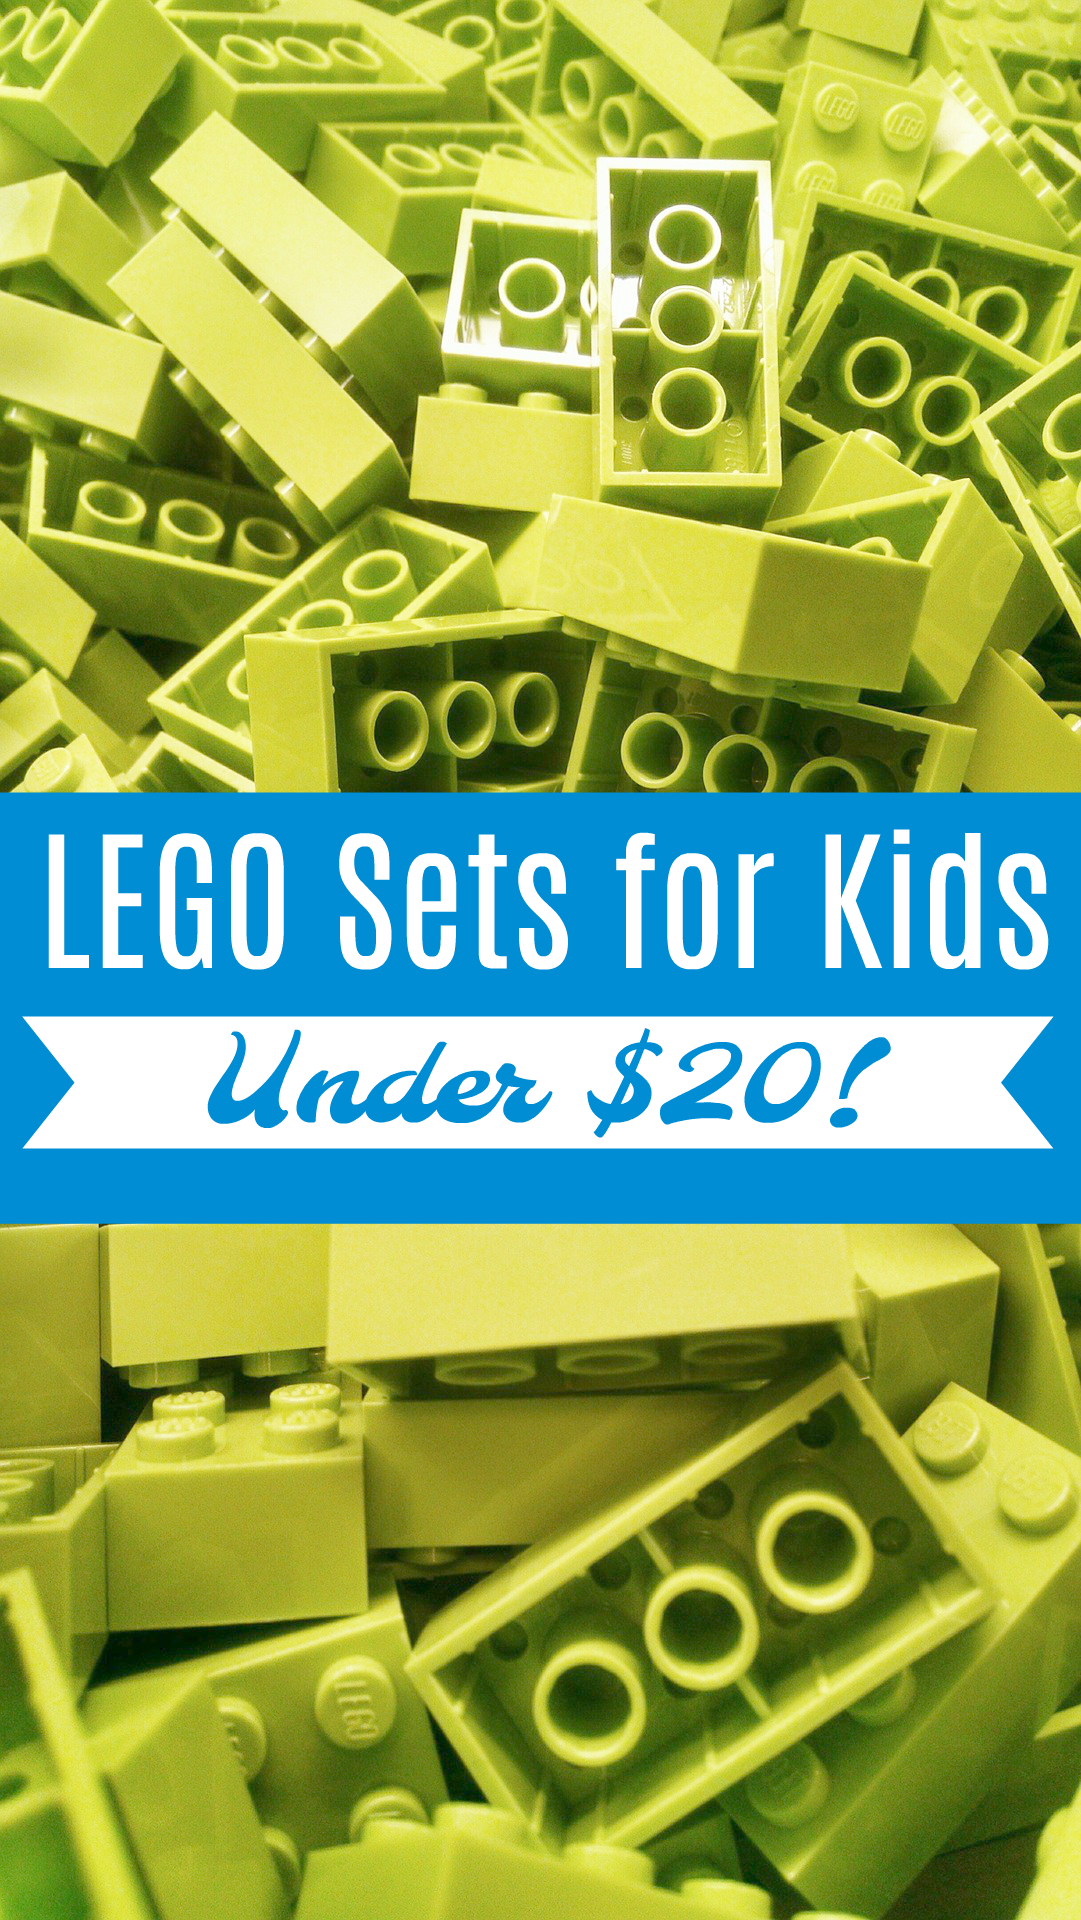 Get these LEGO sets for kids under $20 to enhance indoor summer play! Keep your children entertained inside while they can't play outside.